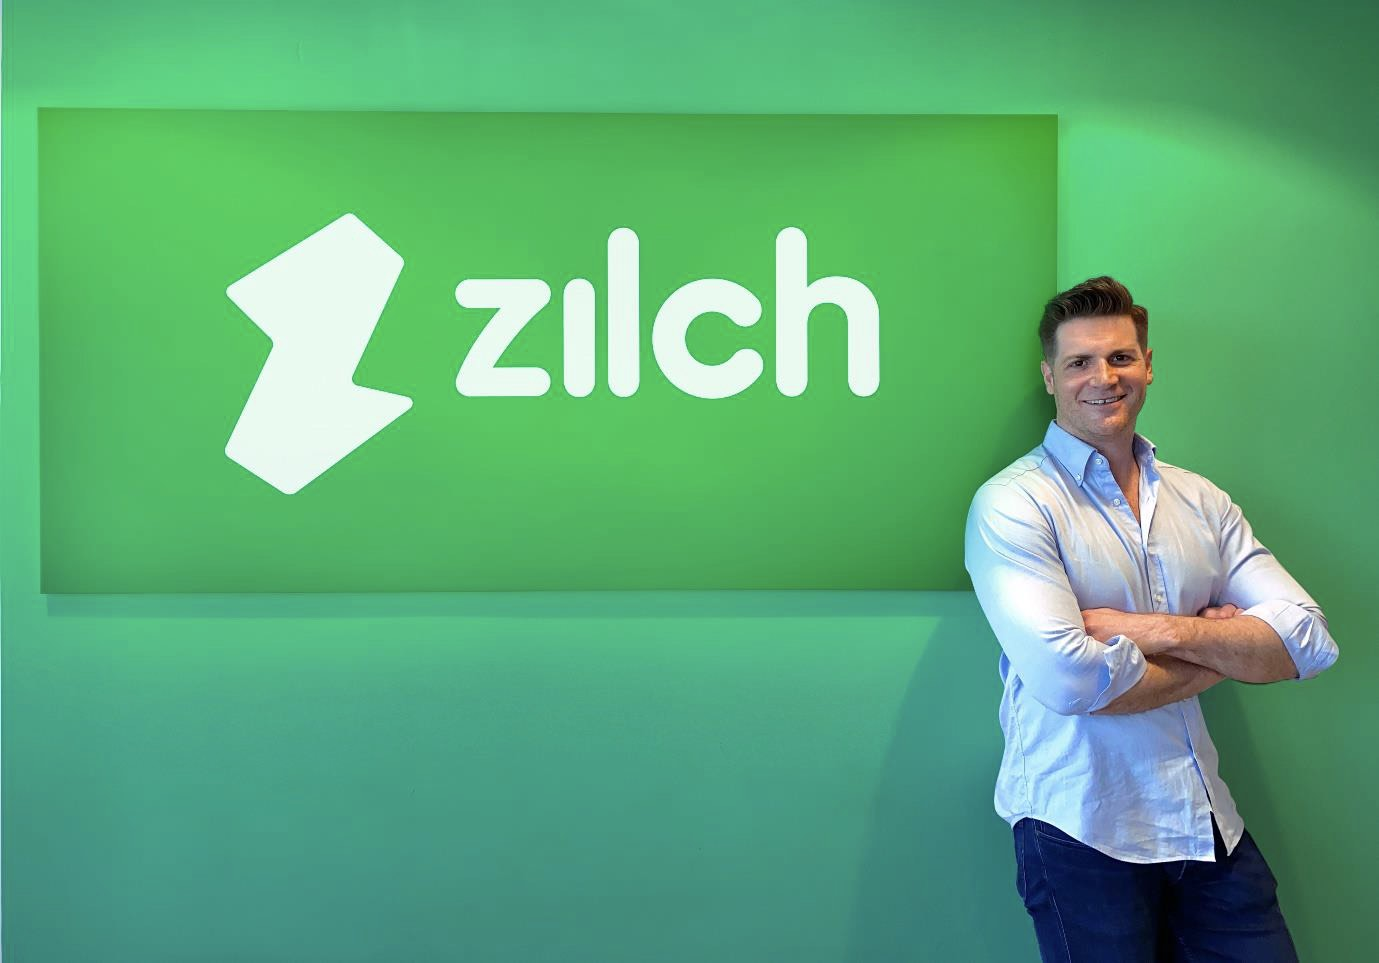 Zilch Technology secures £57.8 million Series B investment backed by investors including Gauss Ventures and M&F Fund